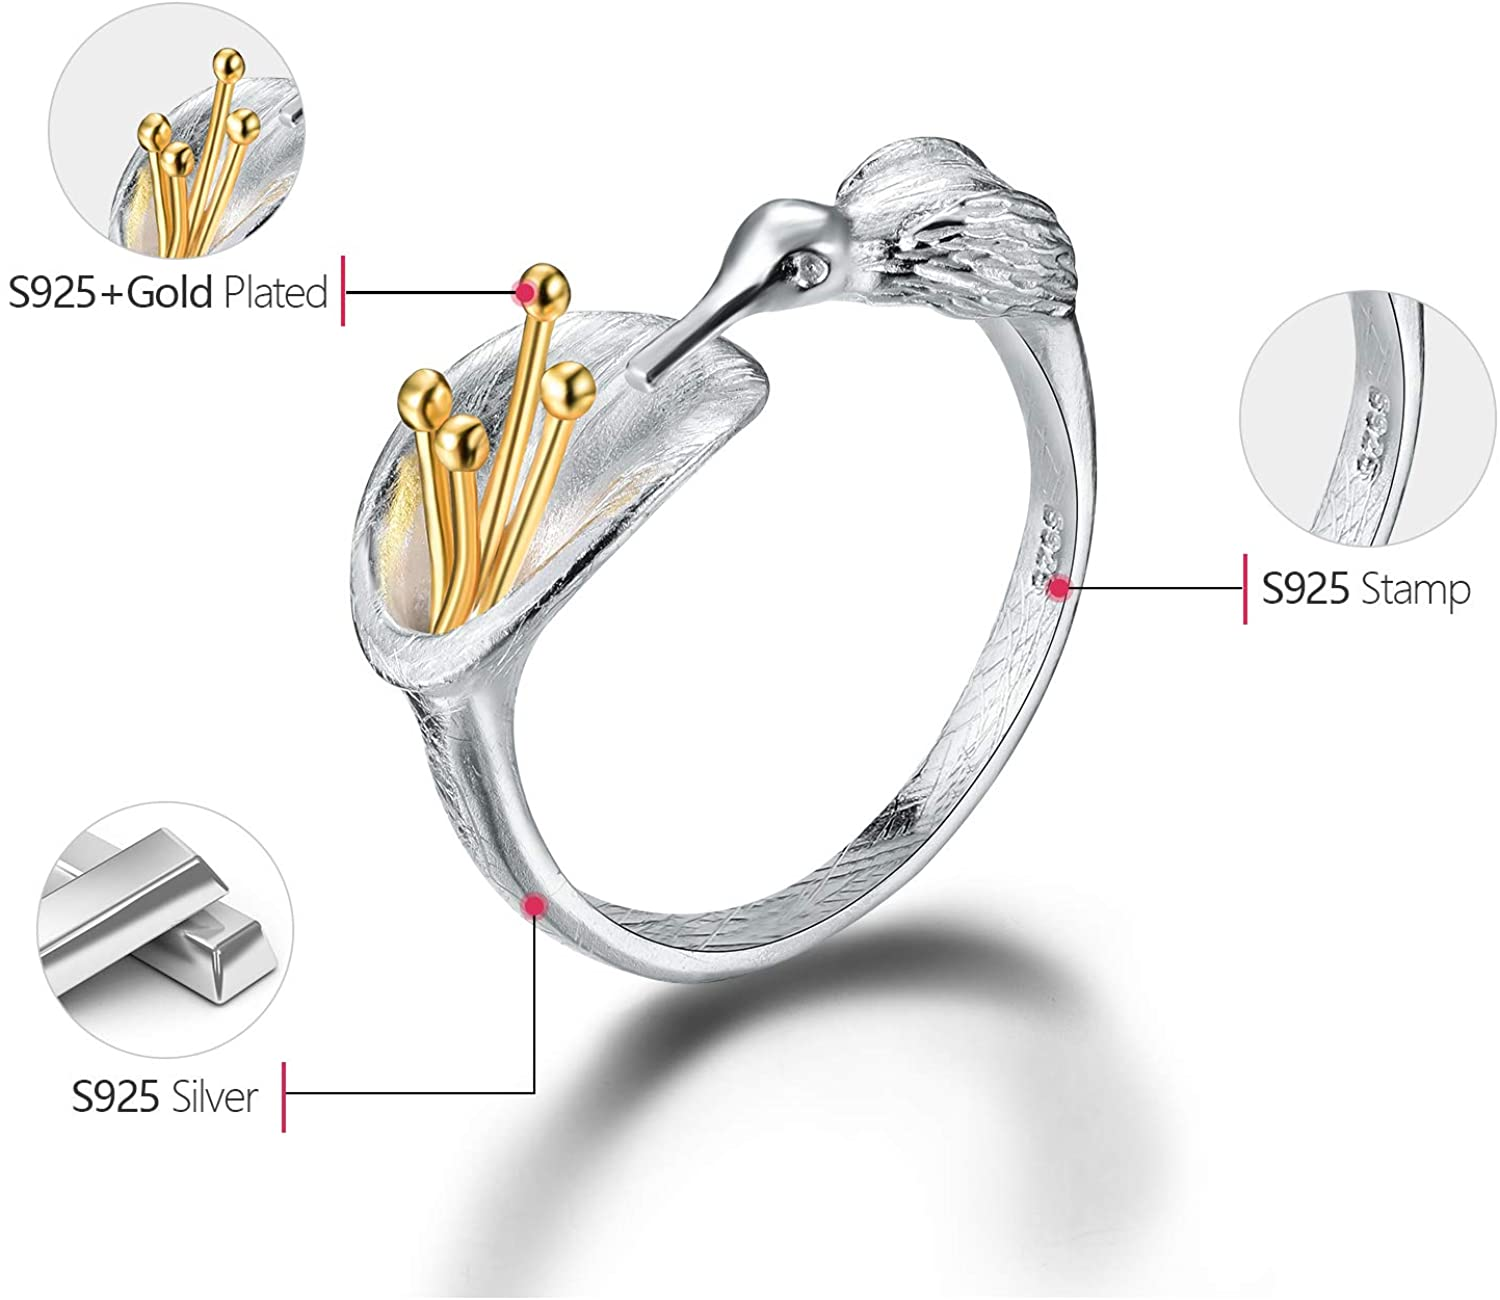 Esberry S925 Sterling Silver Rings Hummingbird Rings Adjustable Rings Unique Fashion Handmade Jewelry for Women and Girls